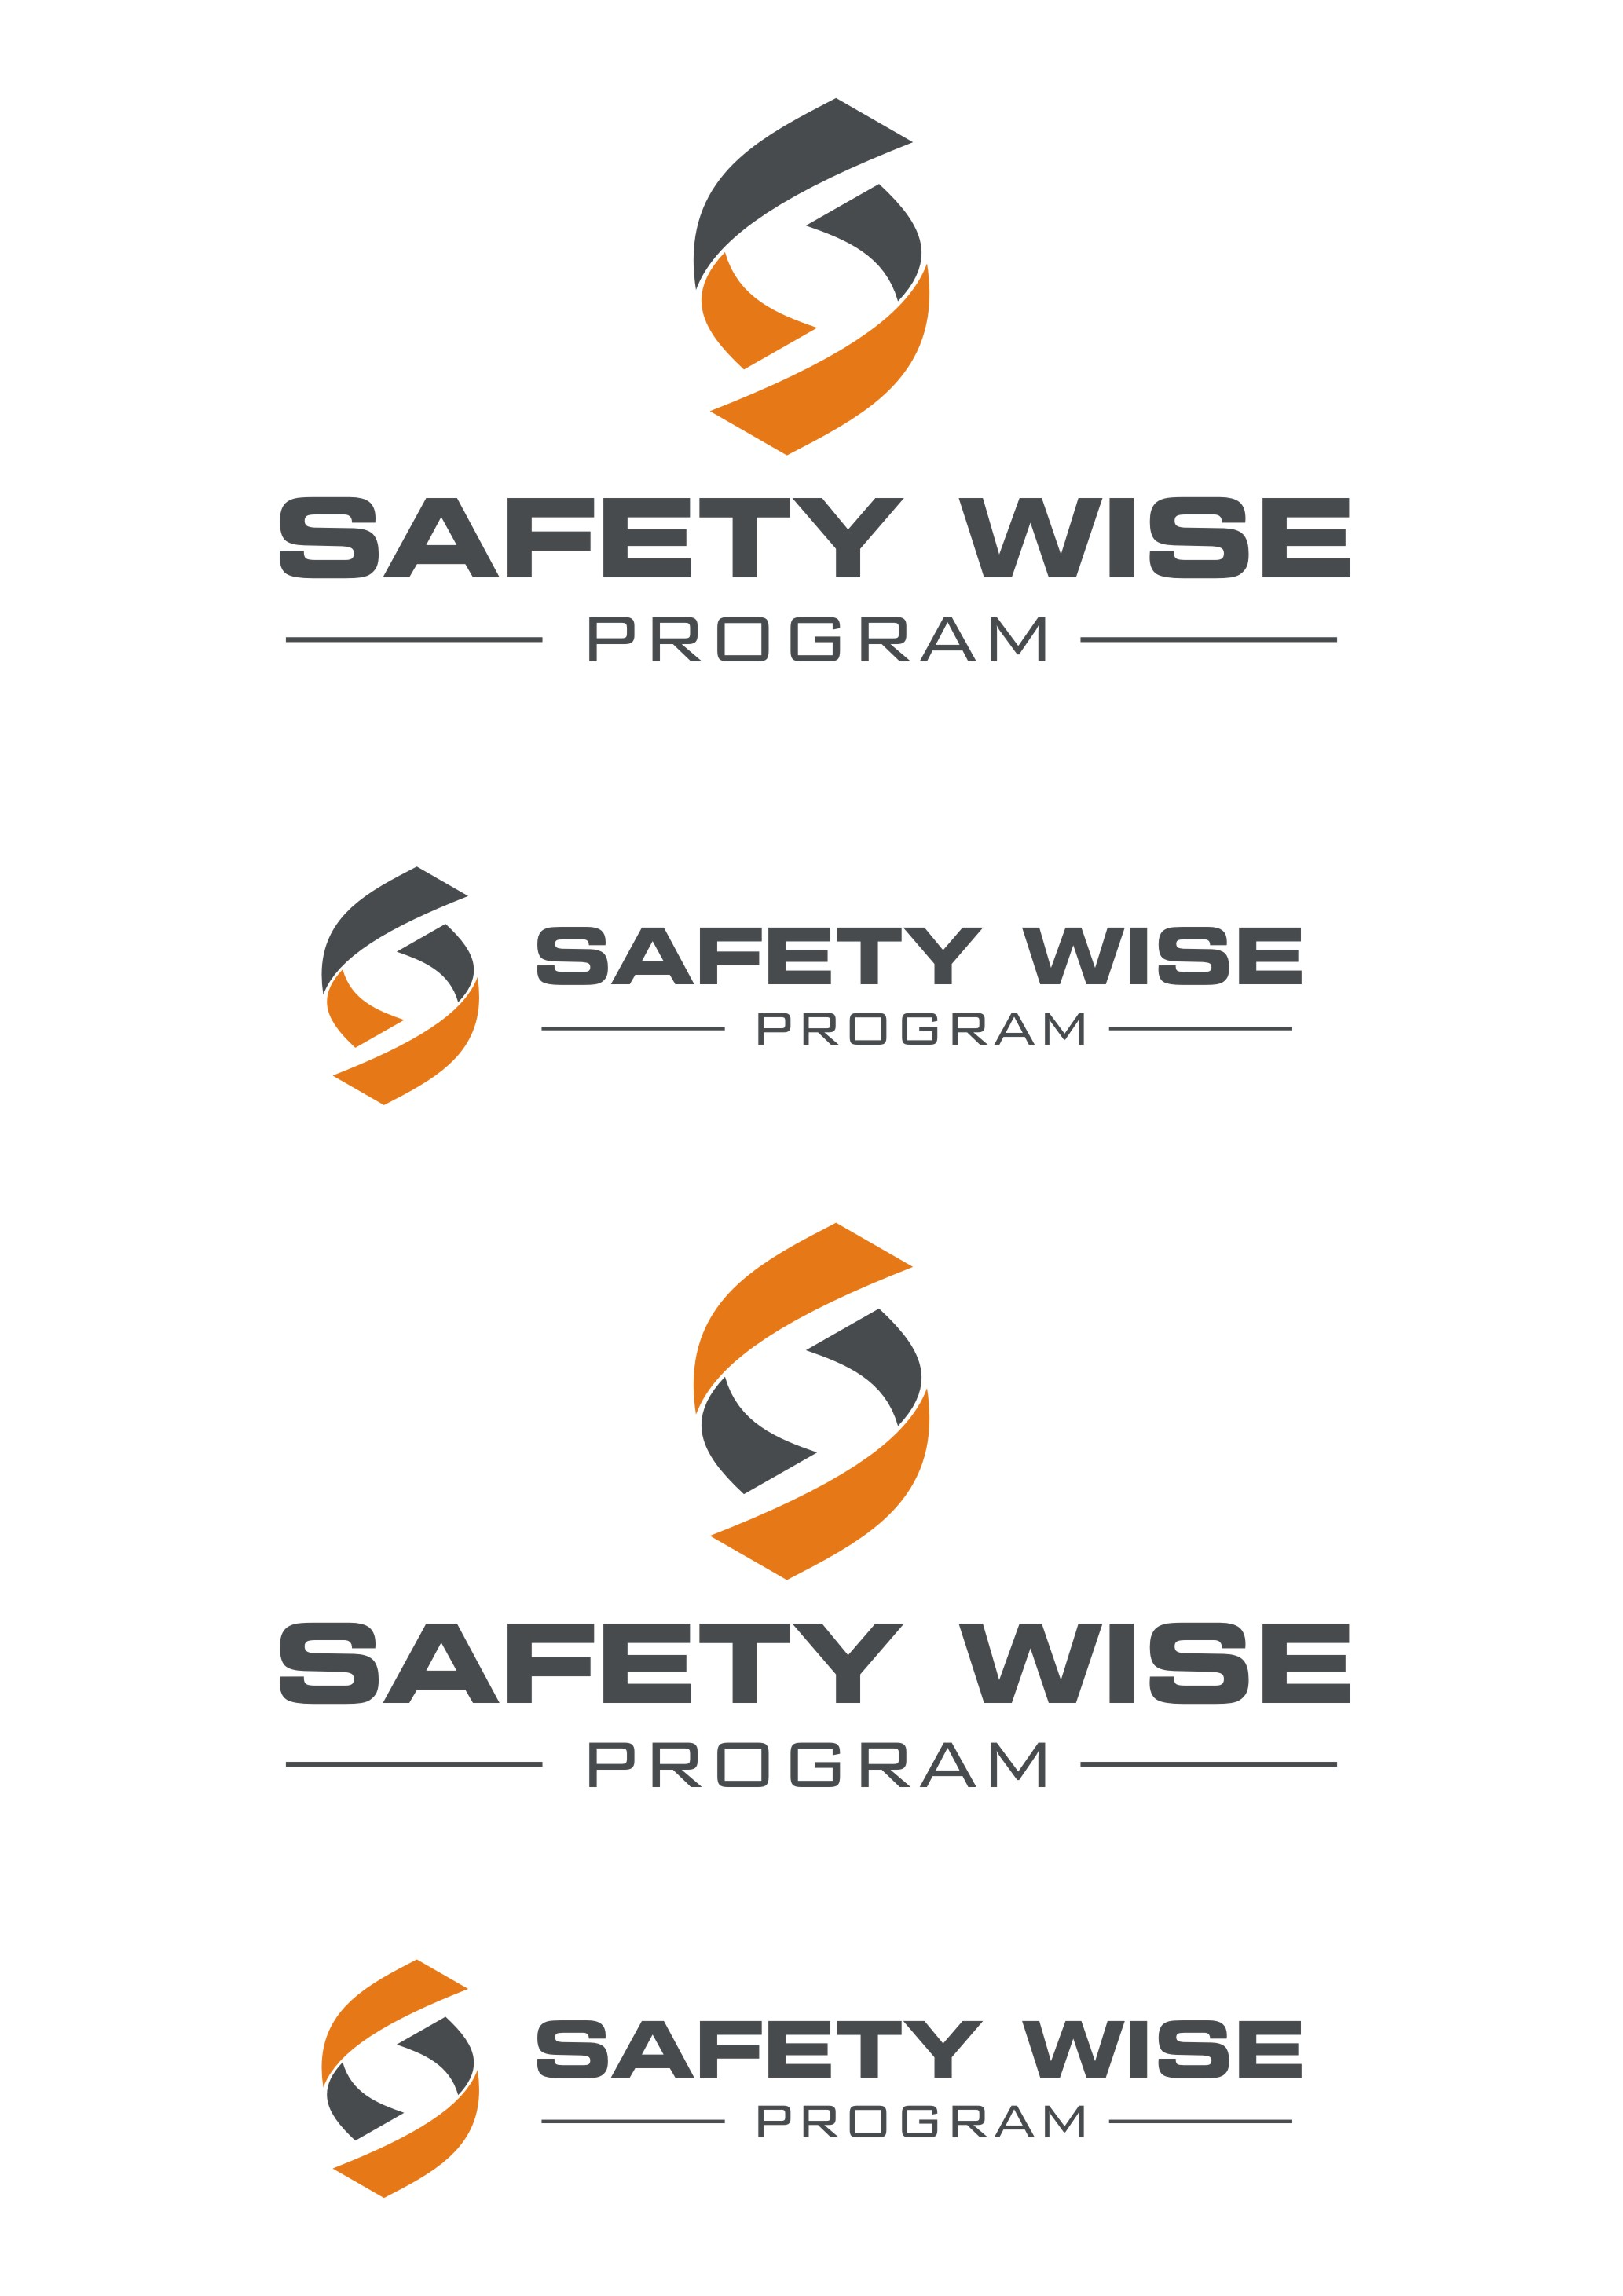 Logo Design by Spider Graphics - Entry No. 128 in the Logo Design Contest New Logo Design for Safety Wise Program.